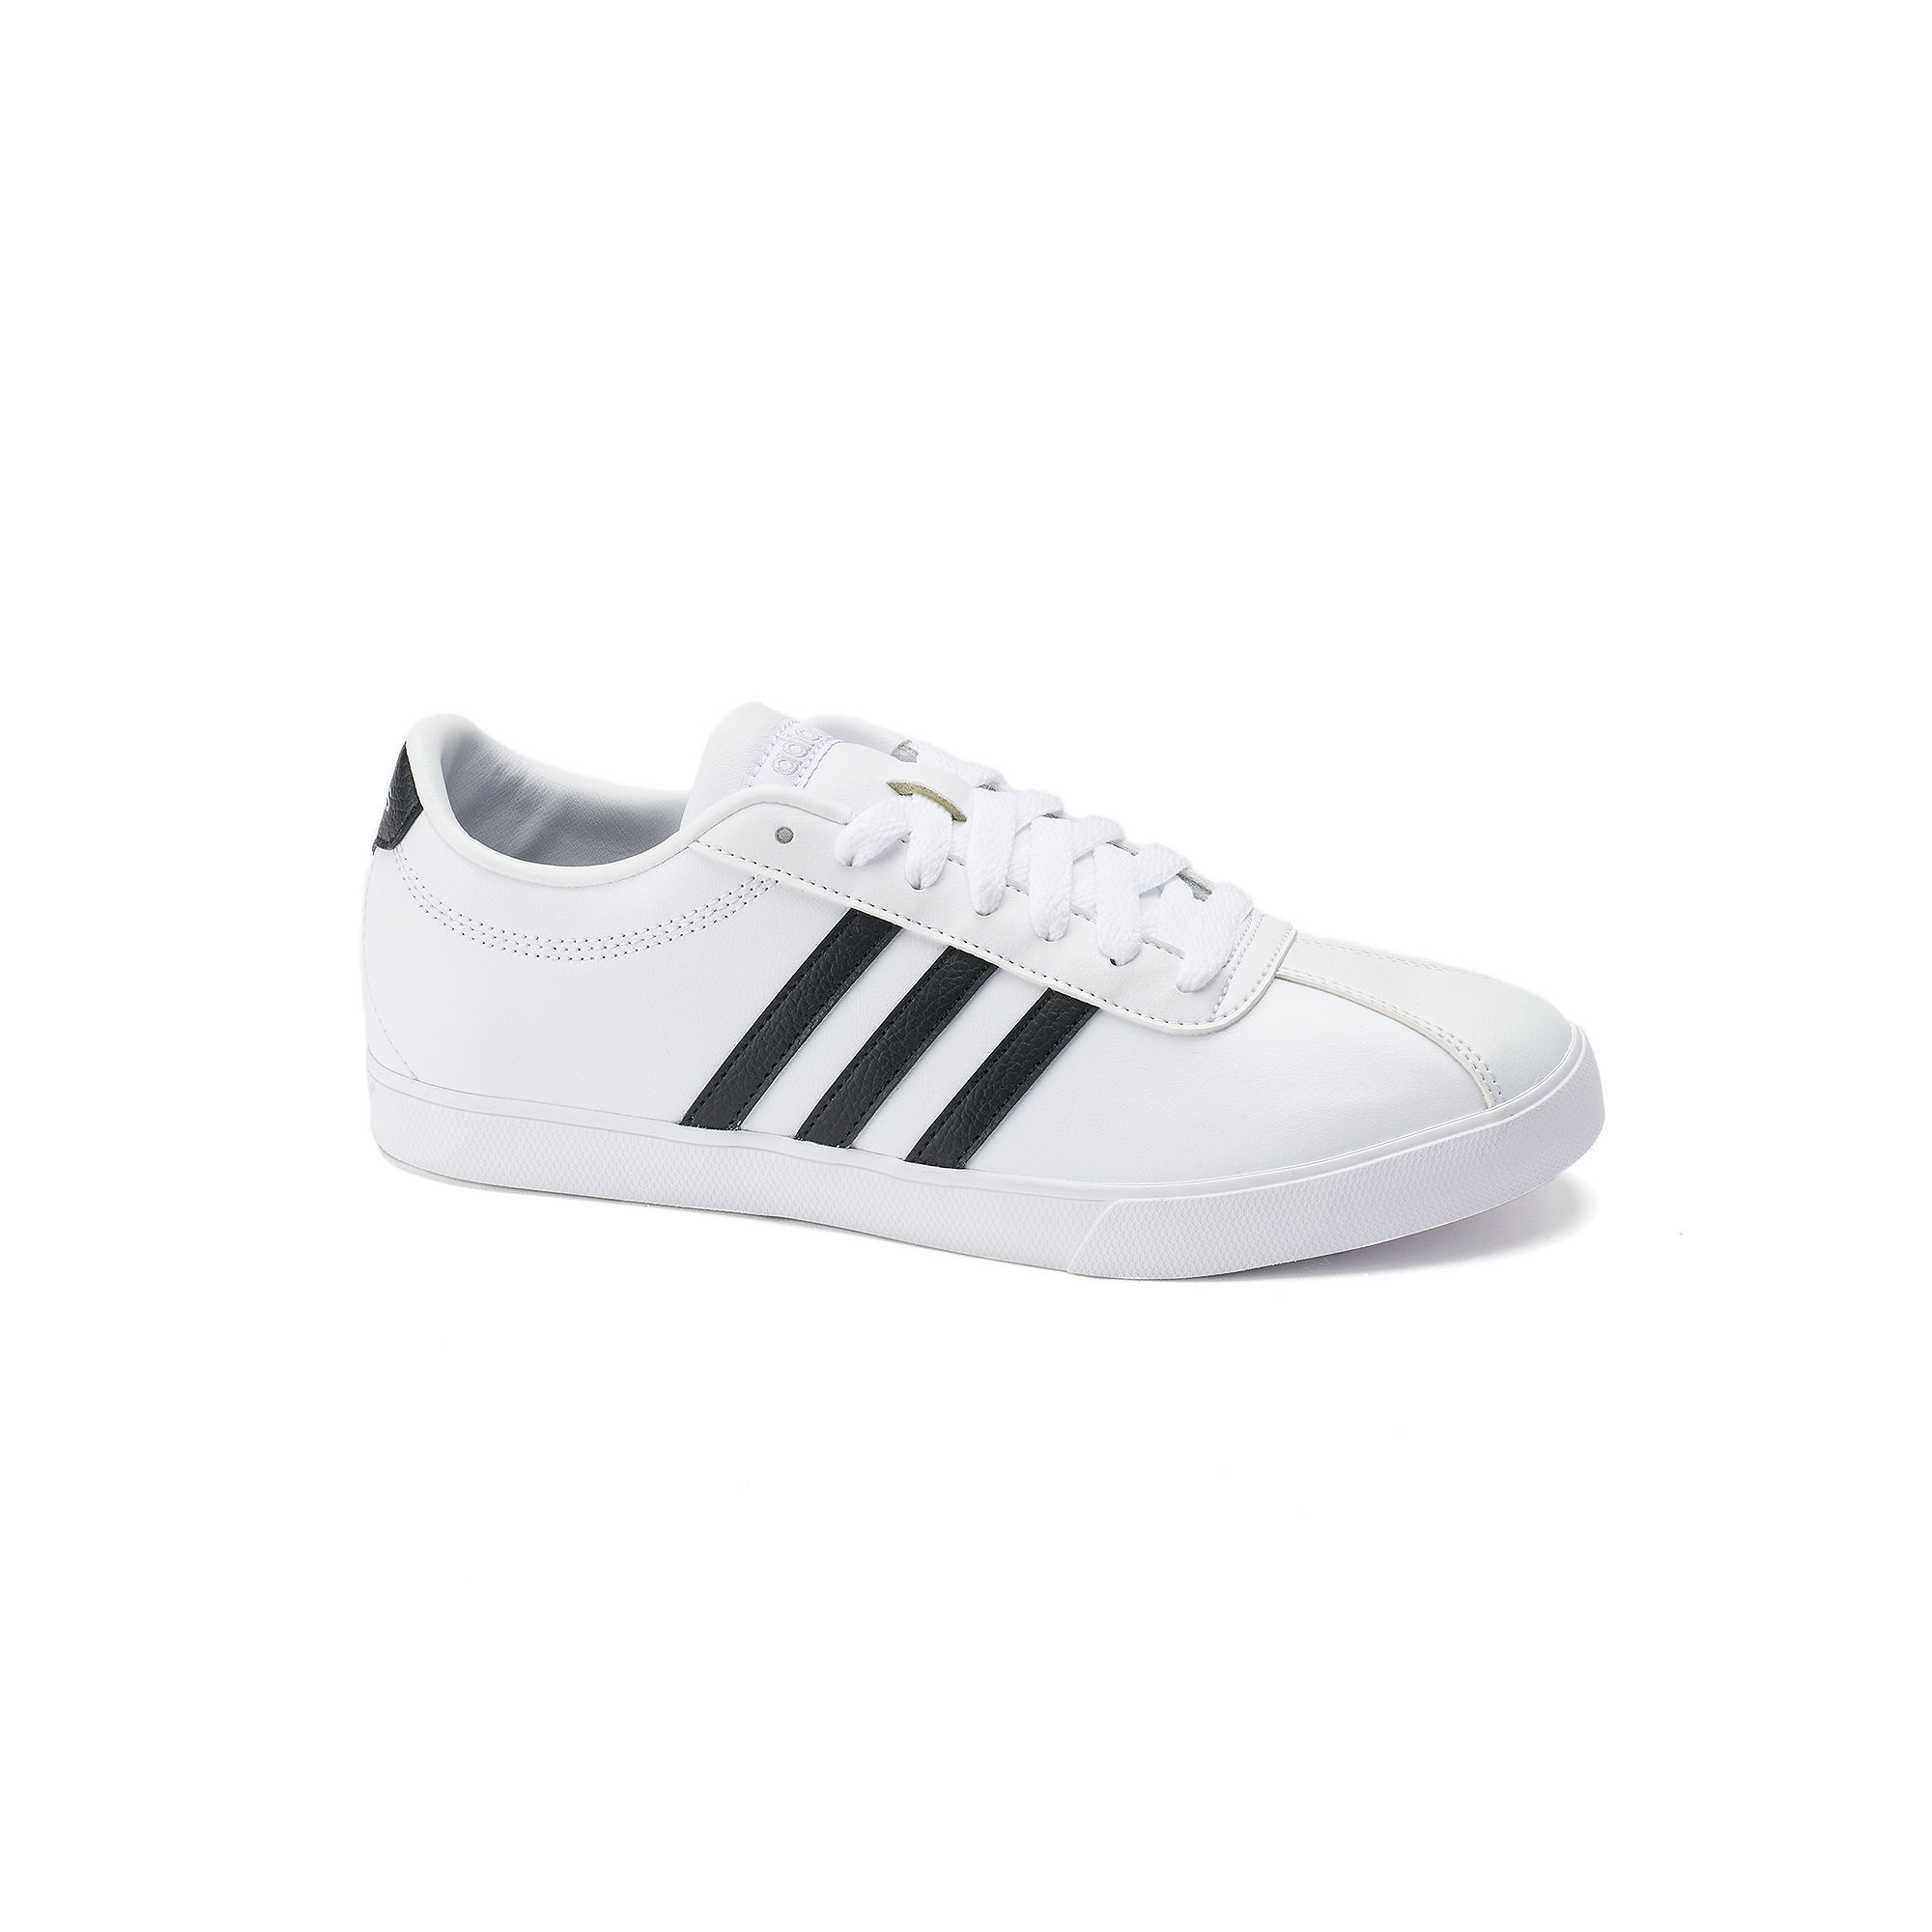 gorgeous mens neo adidas trainers size 9 worn onceq